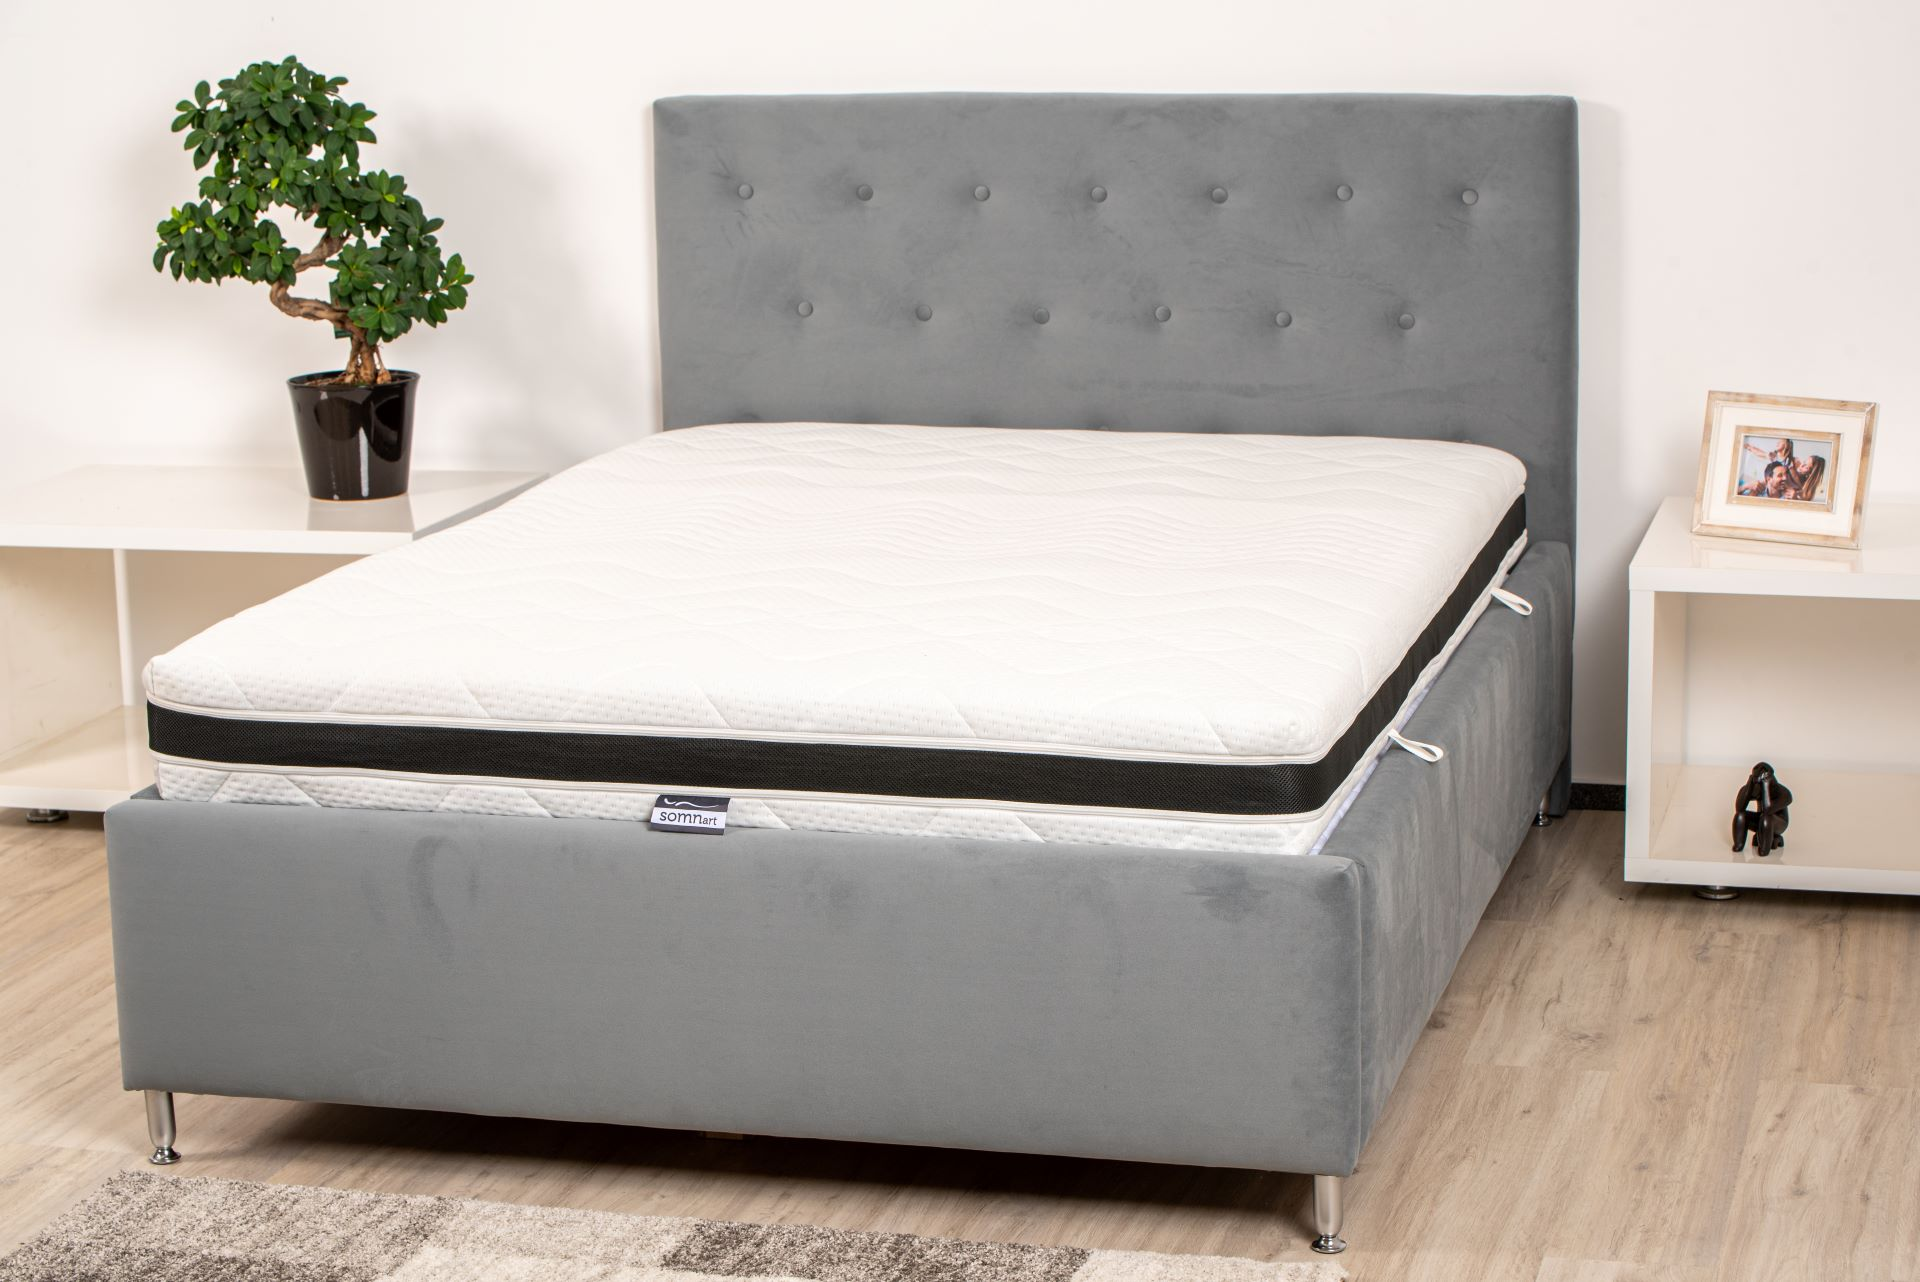 Saltea Somnart Multilayer Supreme Confort - 140x200 cm